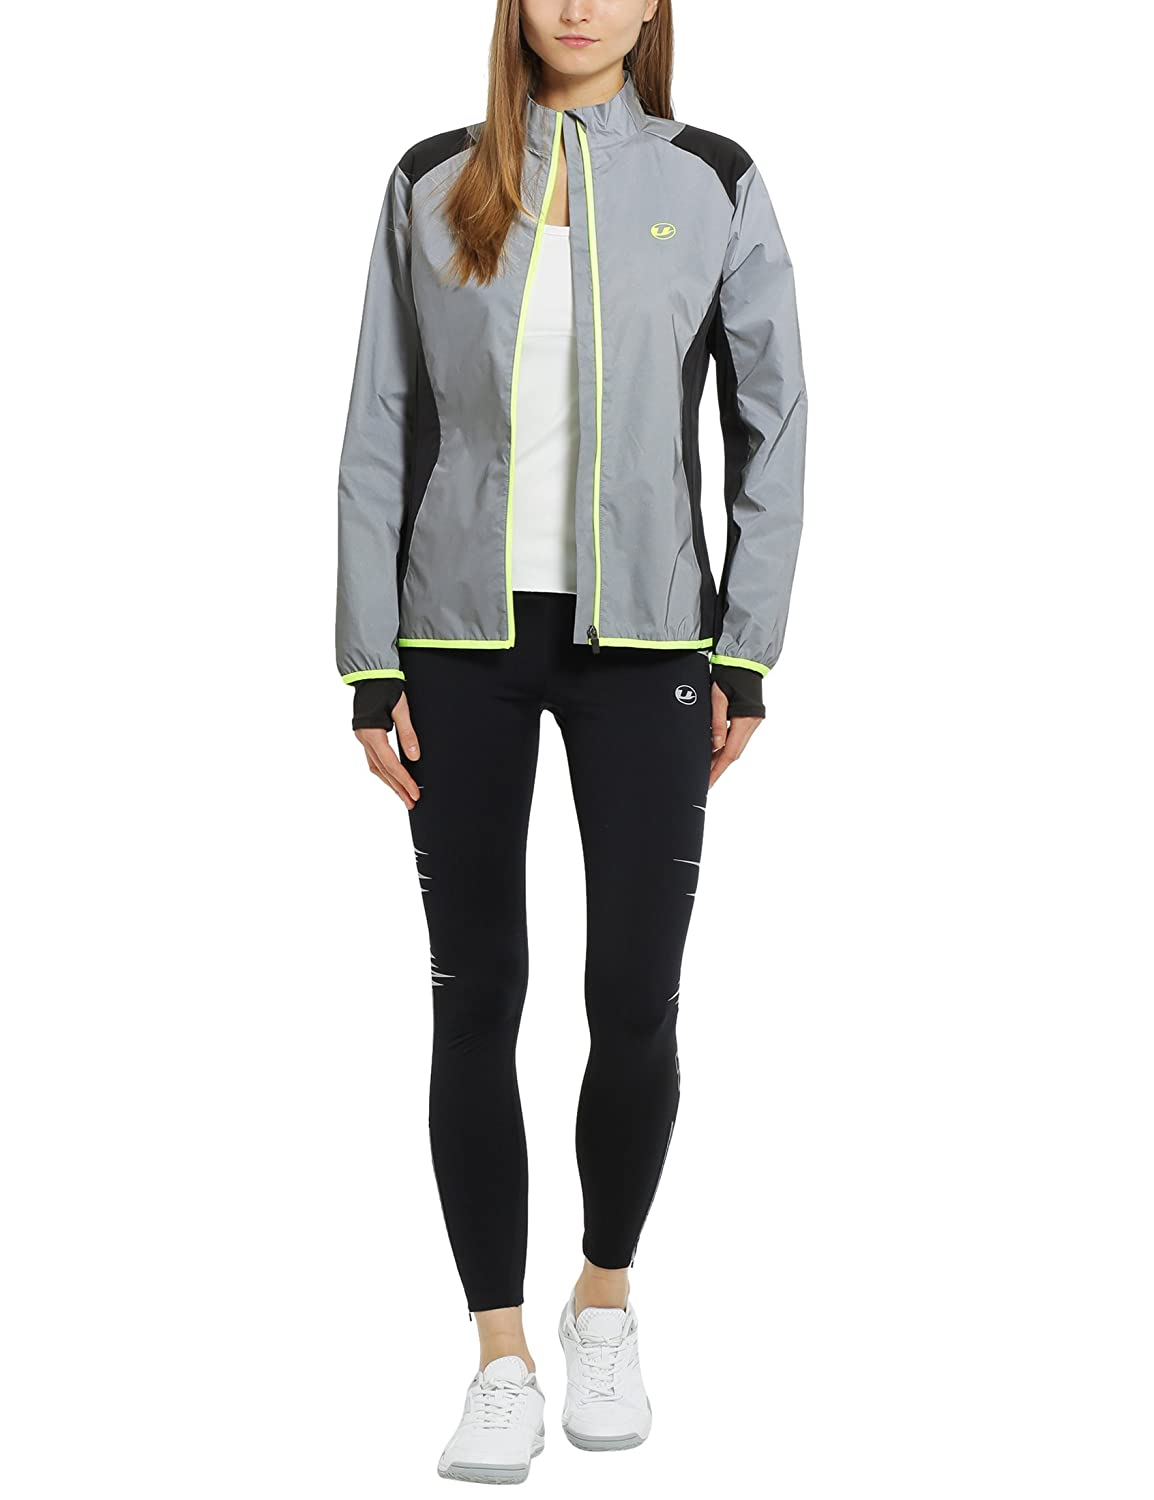 01a31c76fdcb8 Ultrasport Women's Ultra Visible Running and Biking Jacket-Black, X-Large,  XL: Amazon.co.uk: Sports & Outdoors